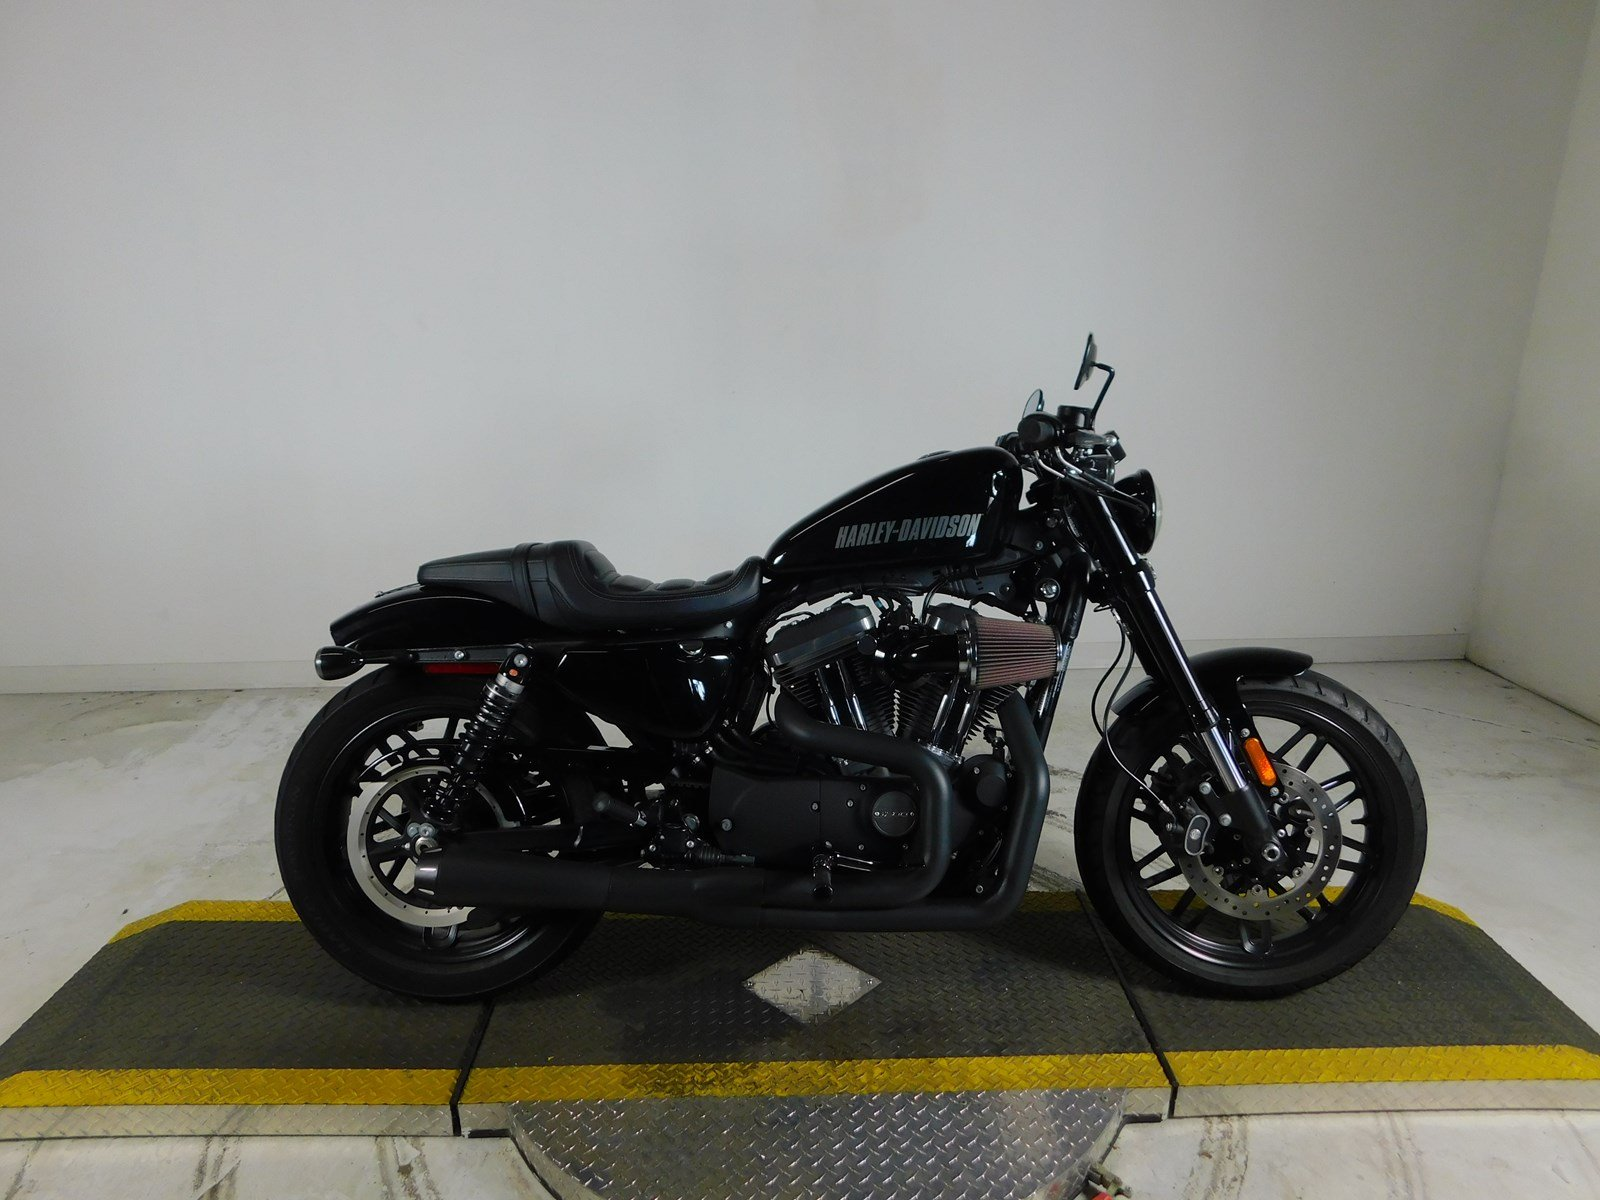 Pre-Owned 2016 Harley-Davidson Sportster Roadster XL1200CX